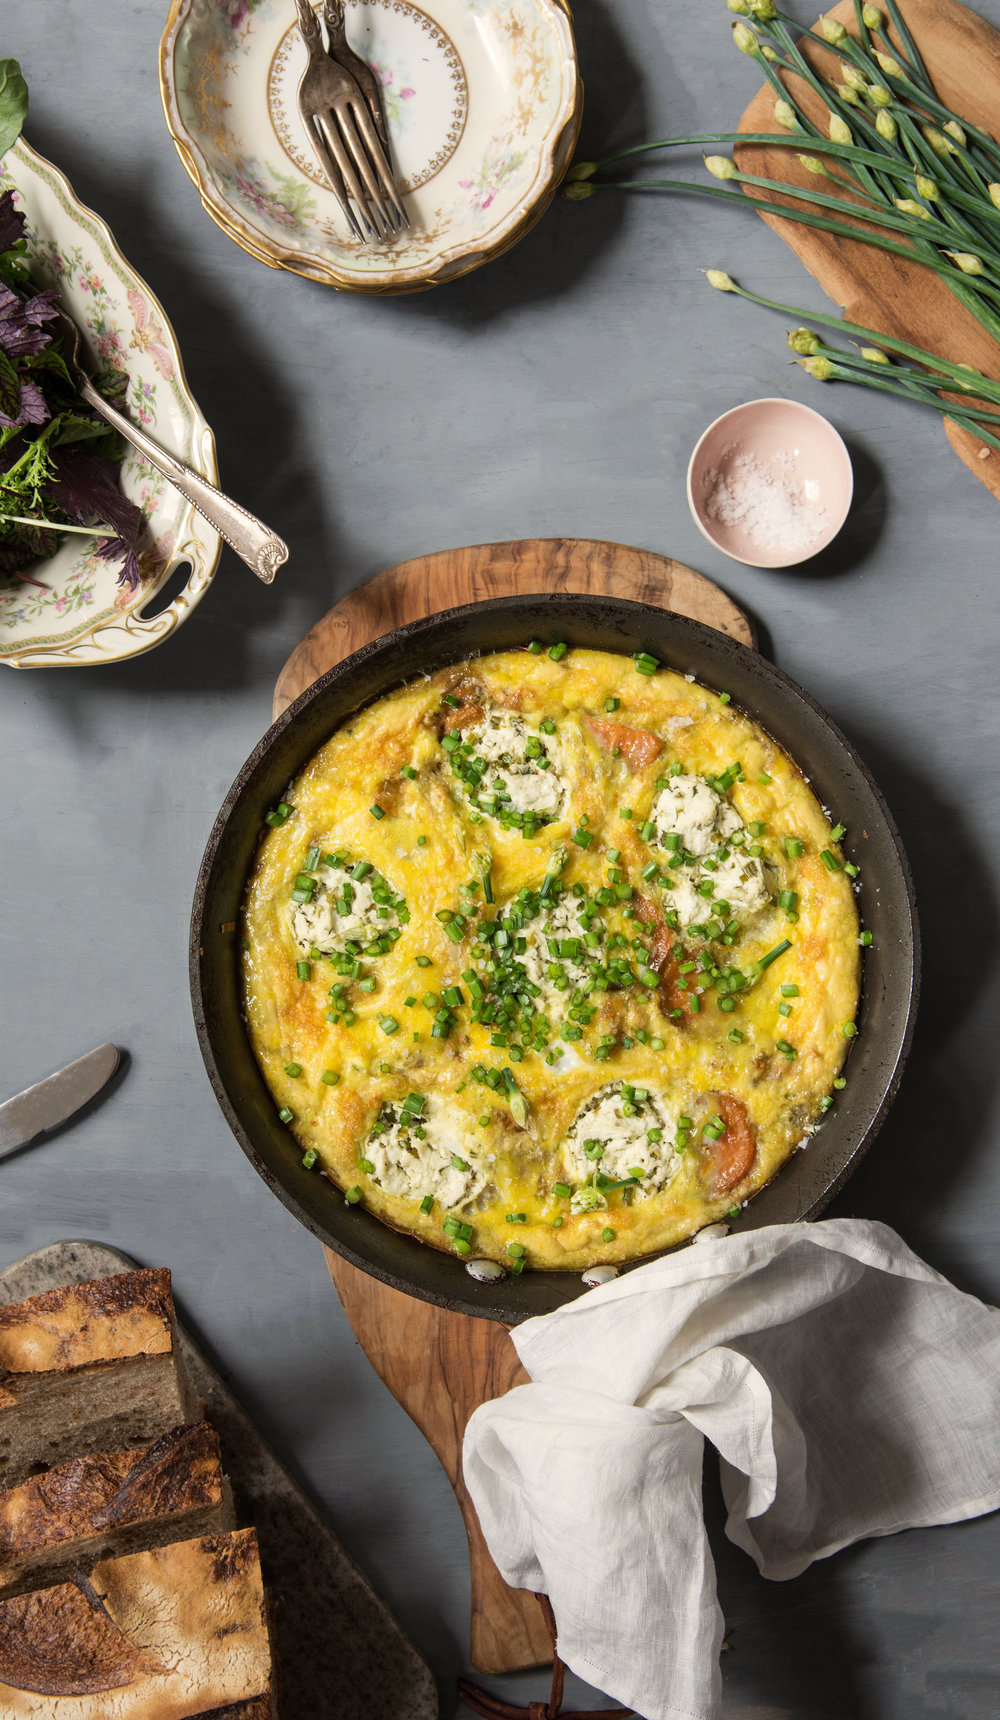 ROSE & IVY Journal Easter Brunch | Sweet Potato and Goat Cheese Frittata